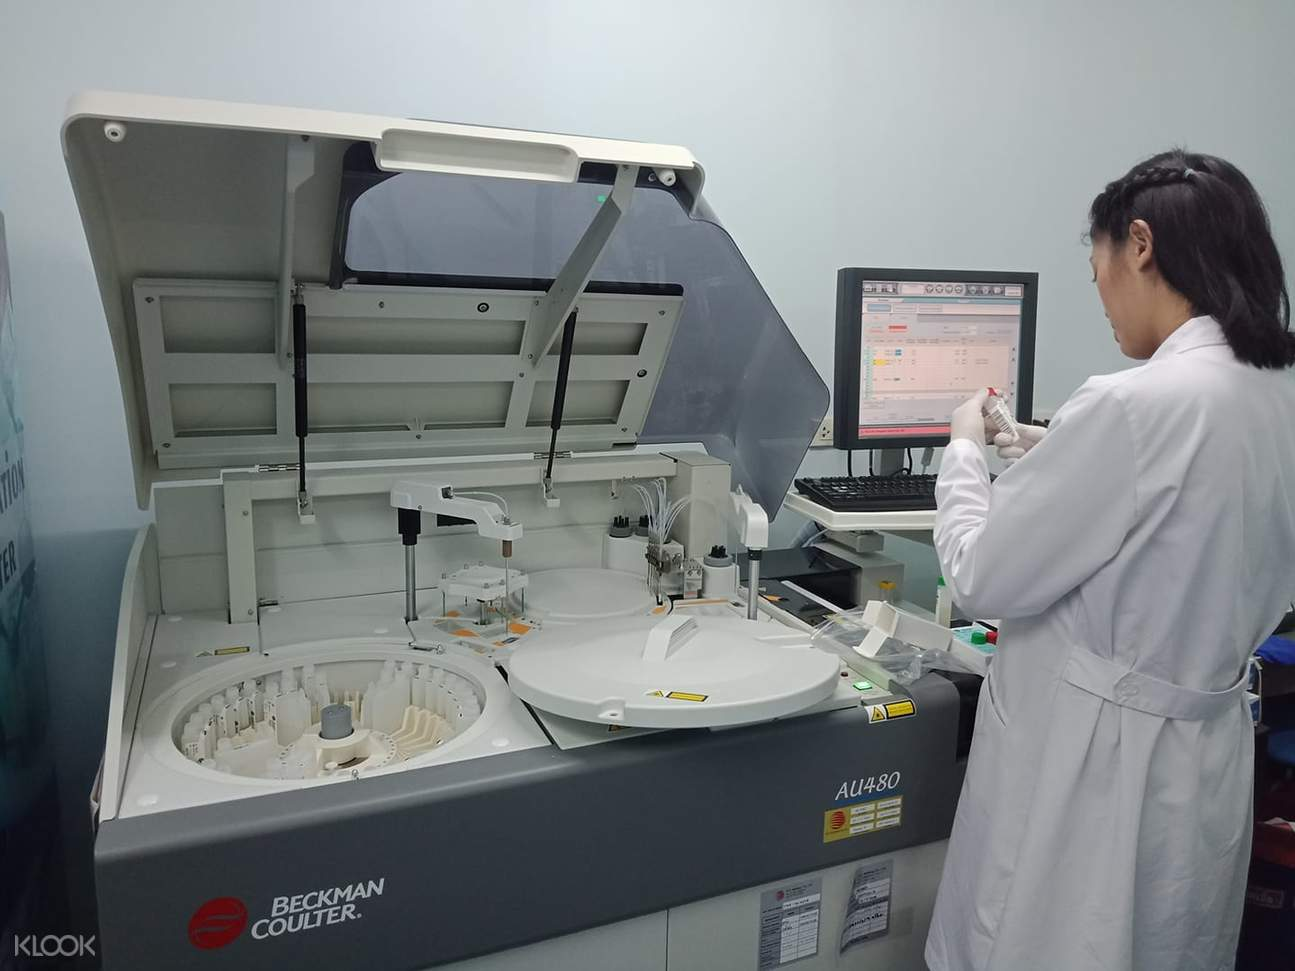 Covid Testing with hygienic and professional service